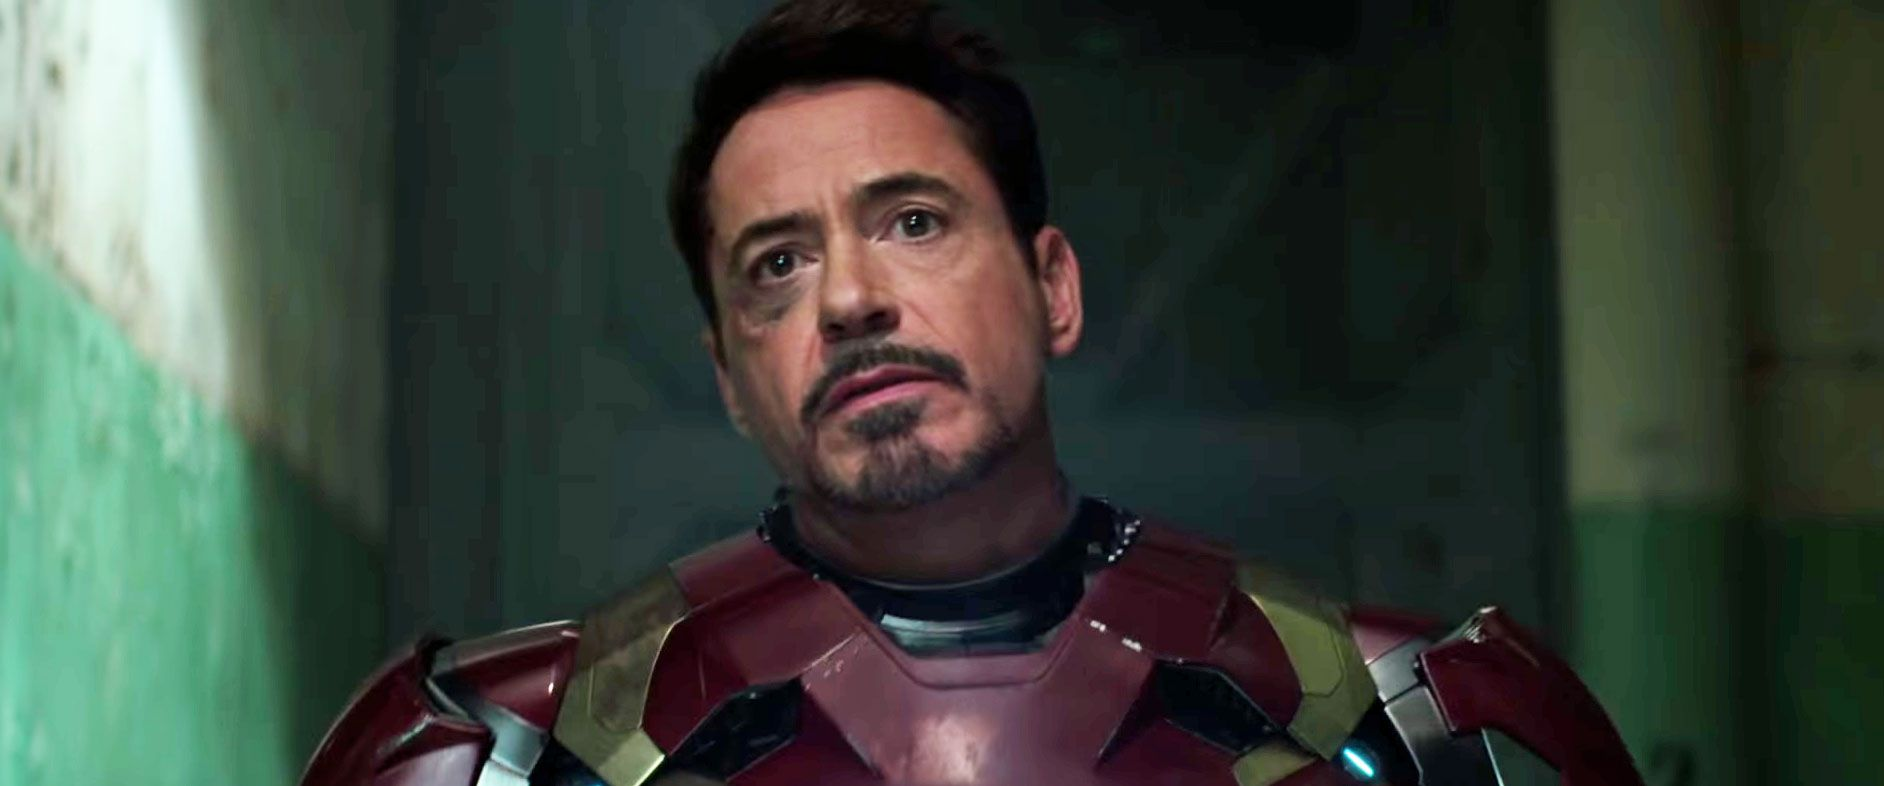 Fan theory forced Marvel to change Avengers: Age of Ultron's ending